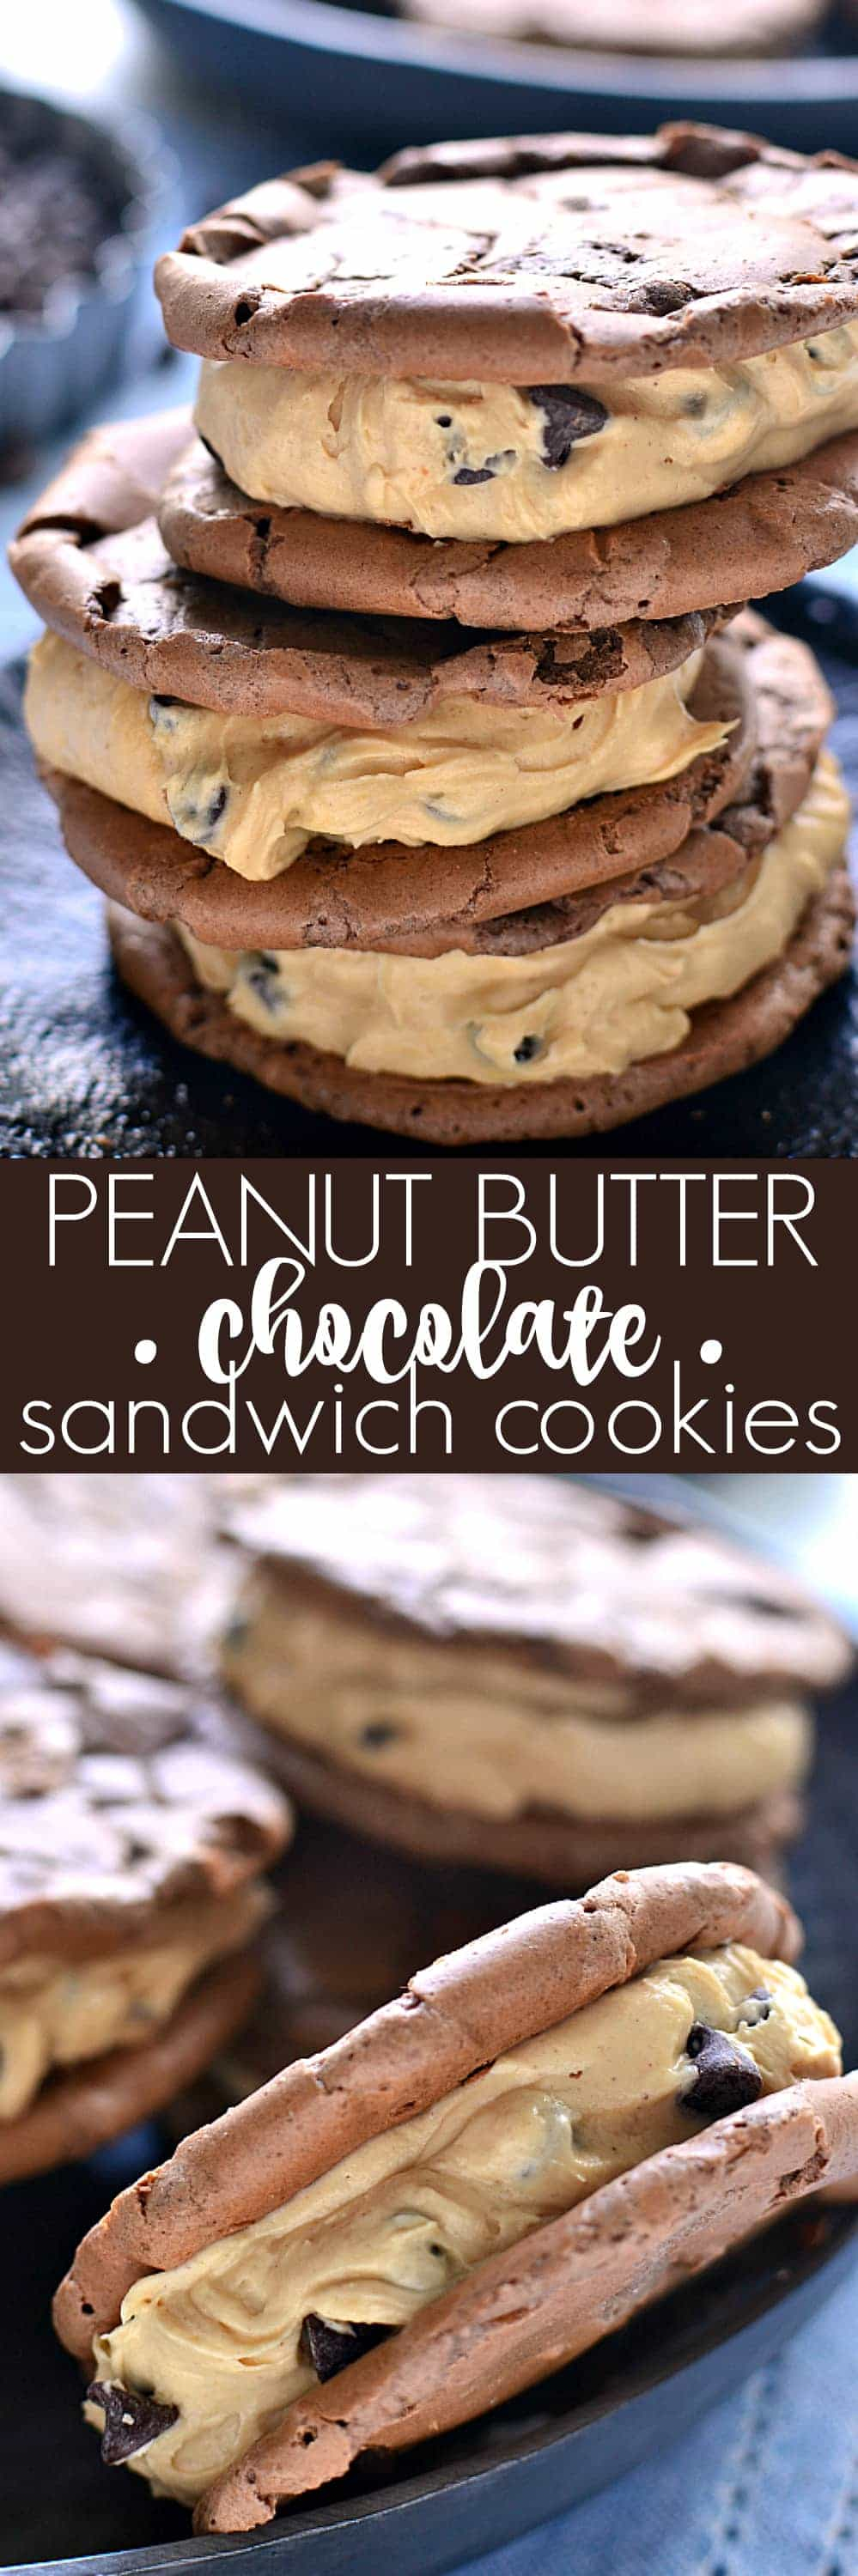 Peanut Butter Chocolate Sandwich Cookies combine chewy chocolate cookies and creamy peanut butter filling. This is the best peanut butter cookies recipe!